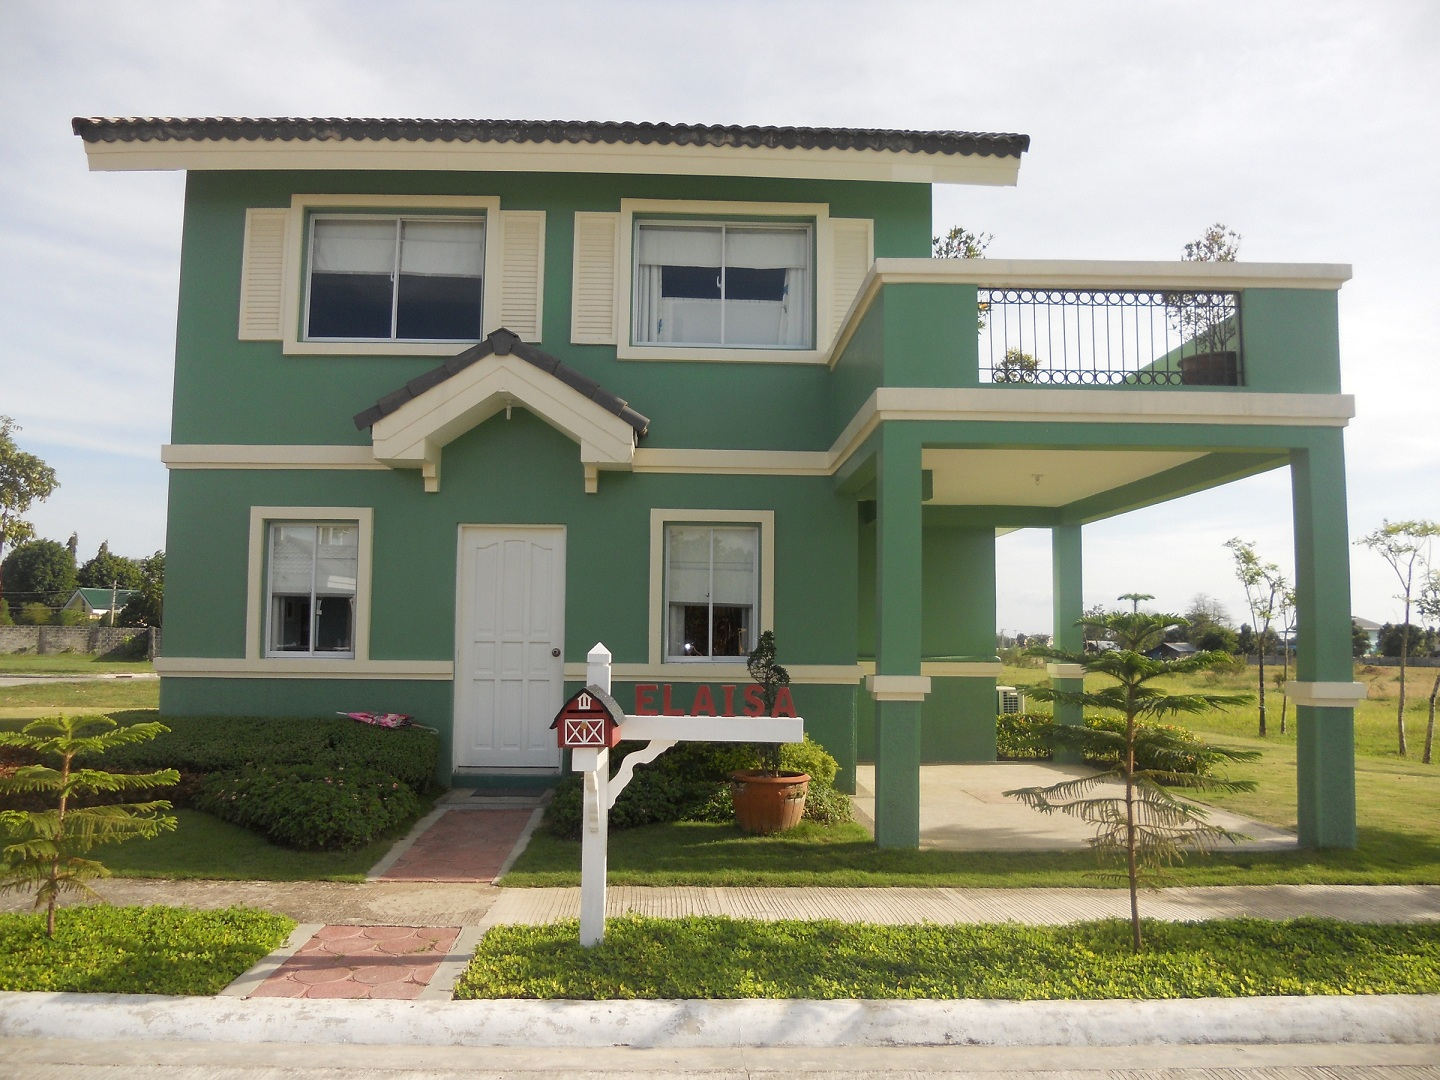 Camella home series iloilo within savannah iloilo by for Cheap model homes